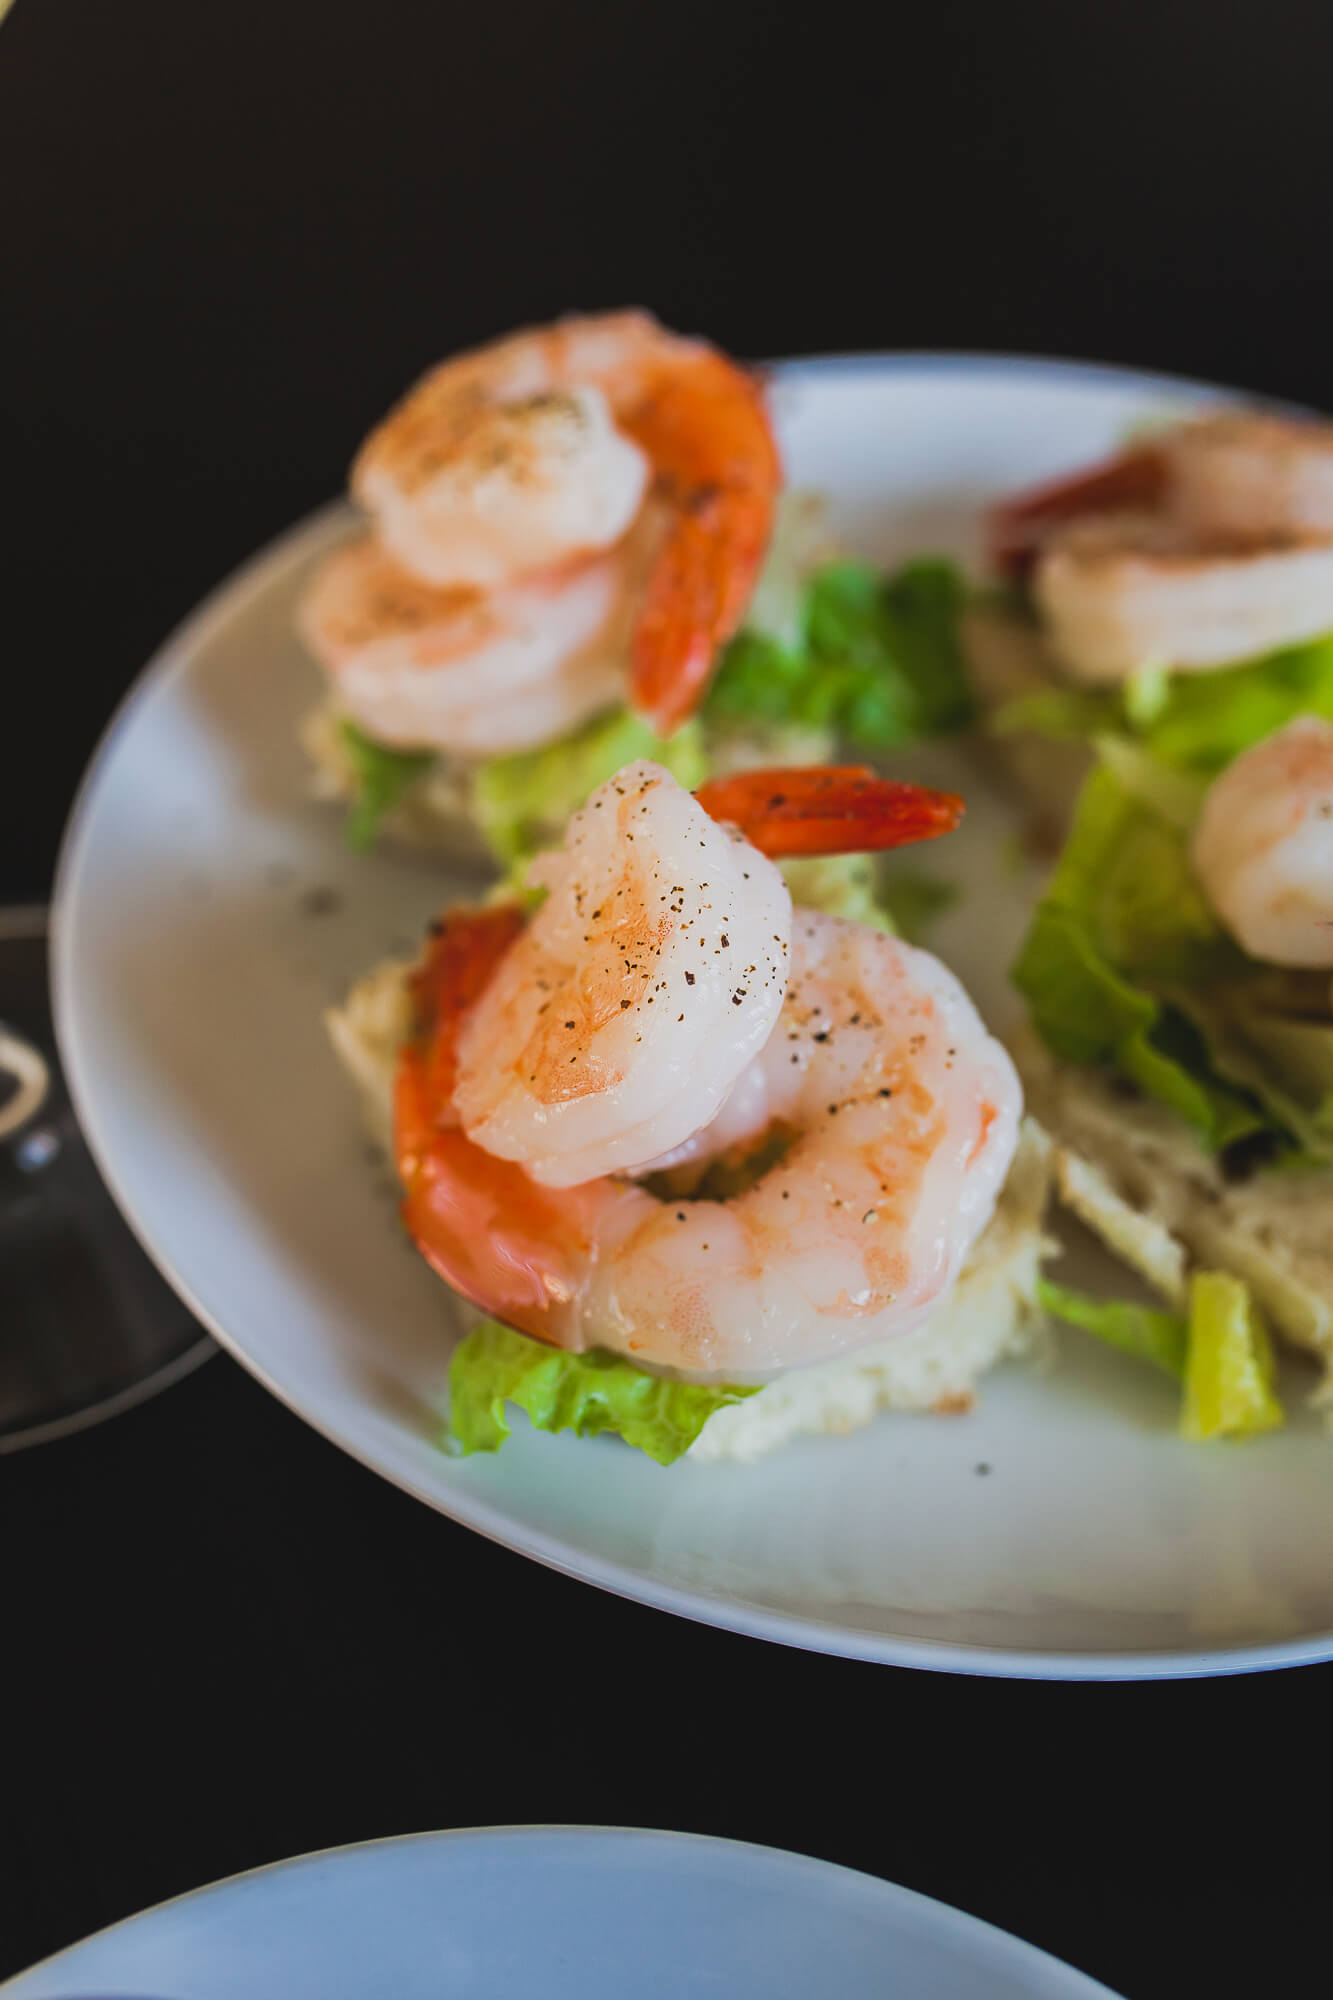 Top 14 Summer Recipes Roundup: Shrimp Cocktail Sliders